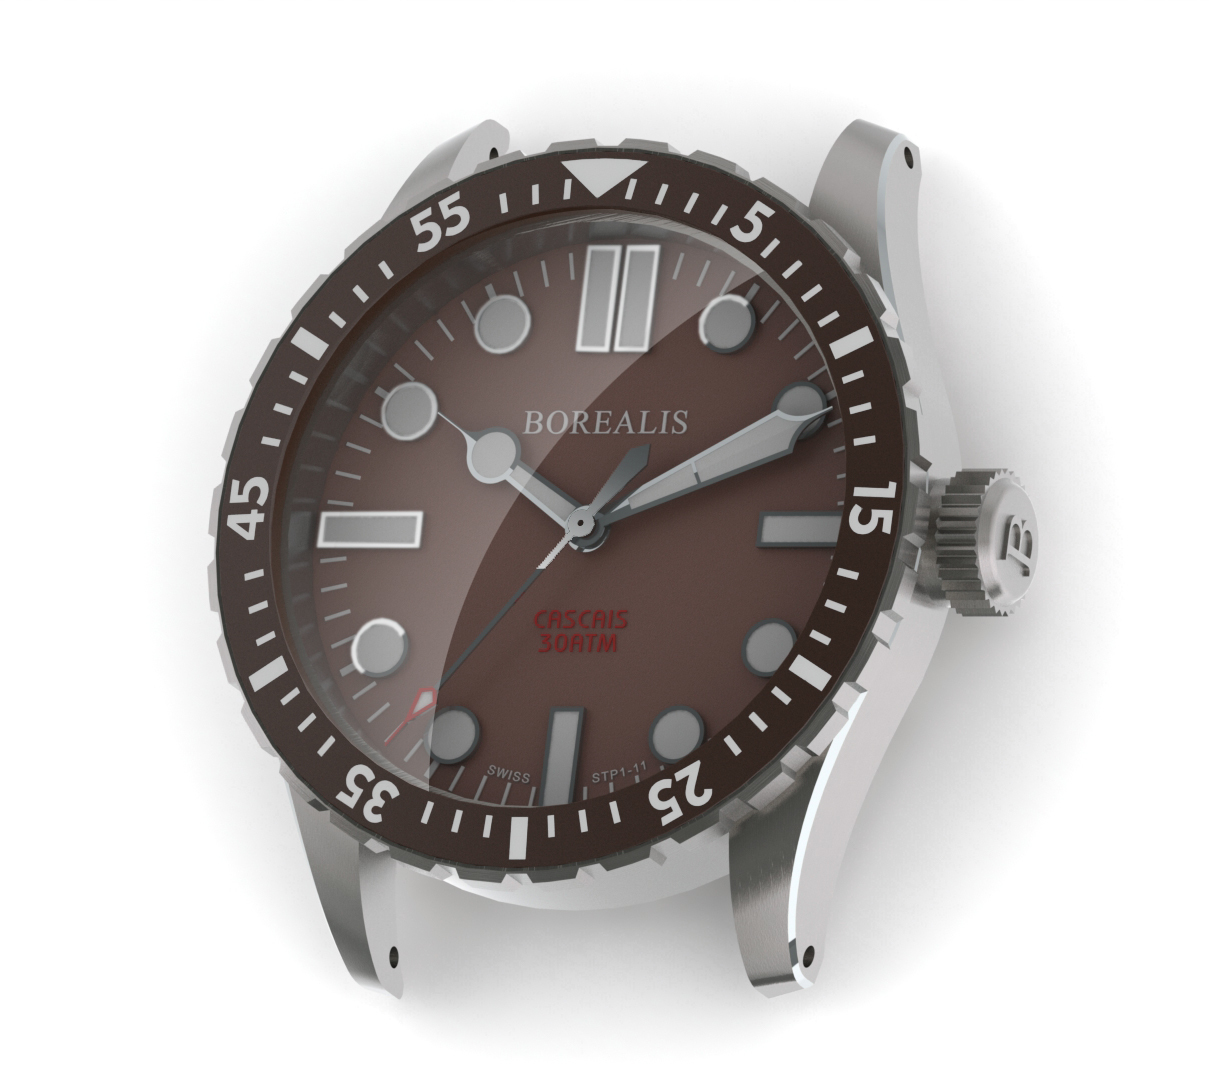 Borealis Cascais Brown Dial Cathedral Hands No Date BGW9 Lume BCSCBROWNDCHNODATE